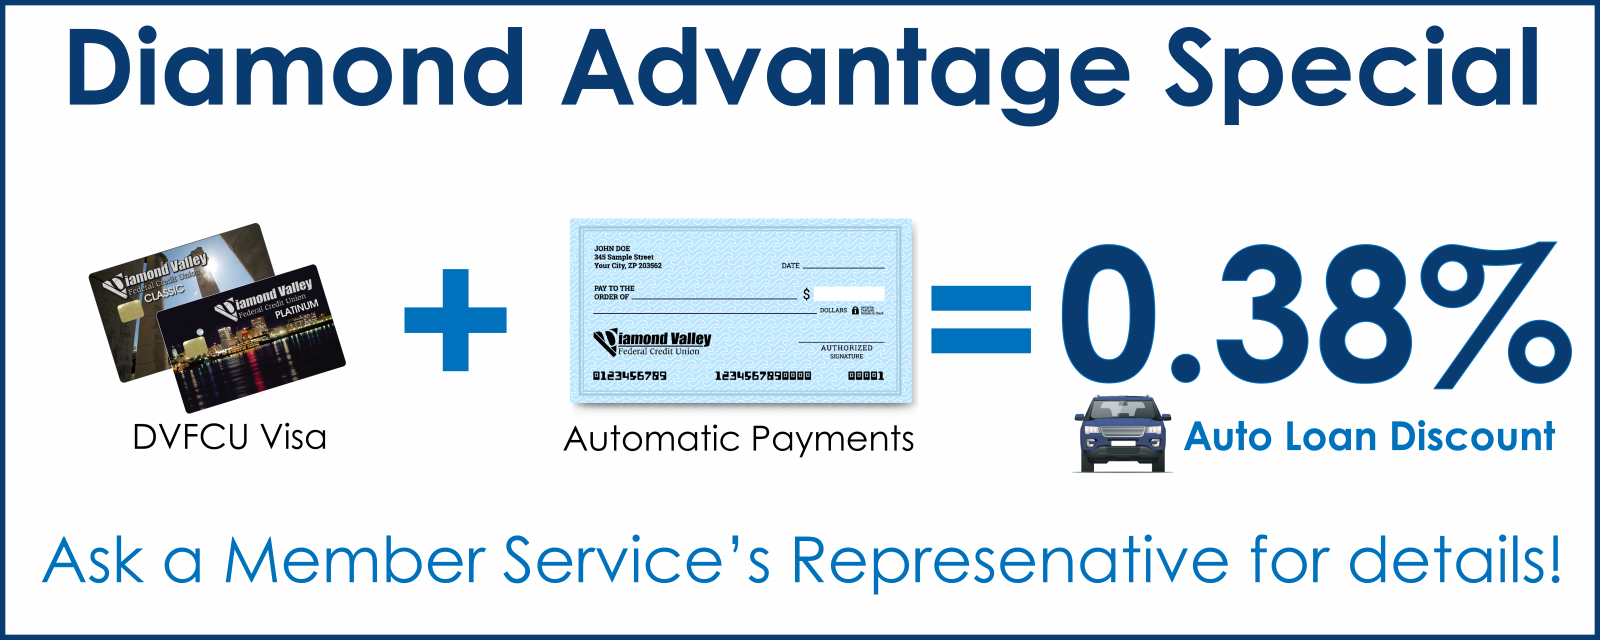 Ask about the Diamond Advantage Promo!